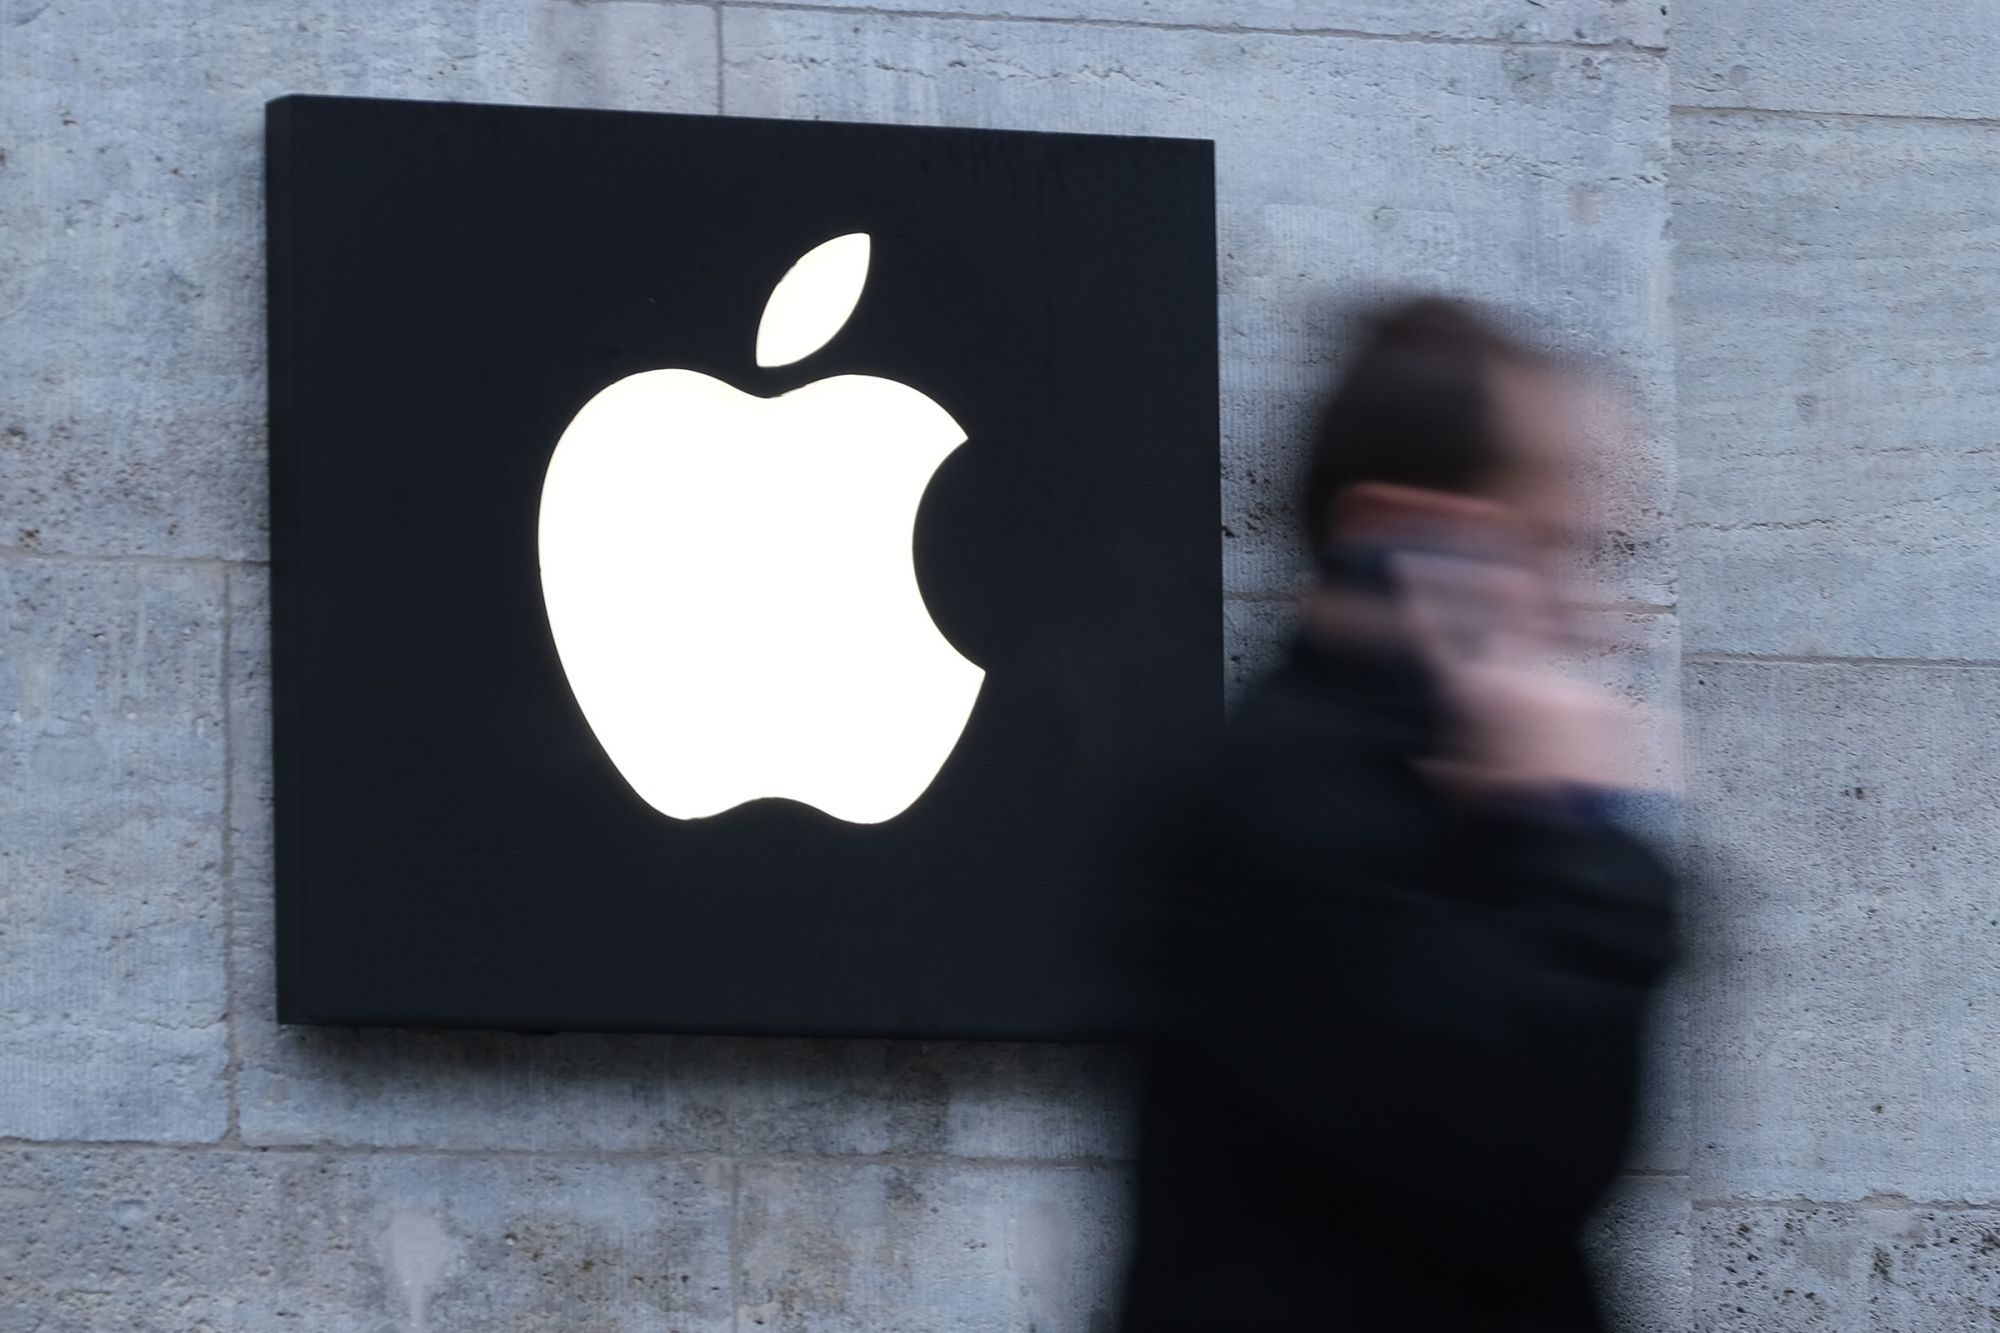 Stock Market In Holding Pattern Ahead of Apple Earnings Report